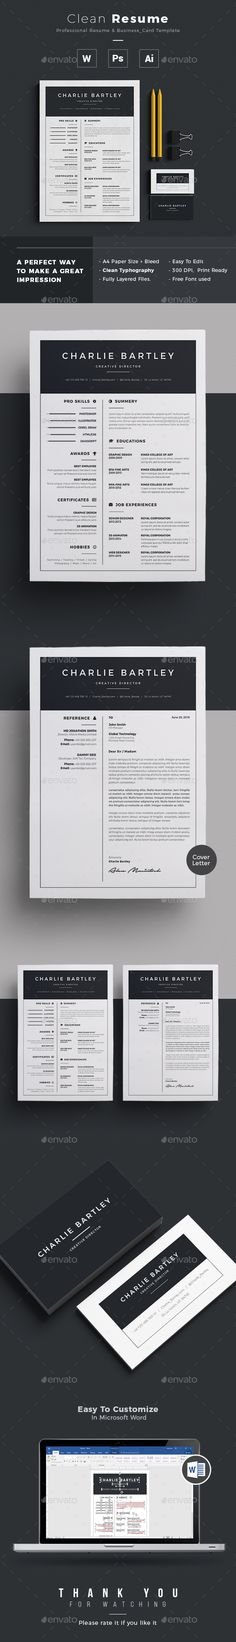 Resume — Photoshop PSD #resume creative #indesign • Download ➝ https://graphicriver.net/item/resume/19582345?ref=pxcr